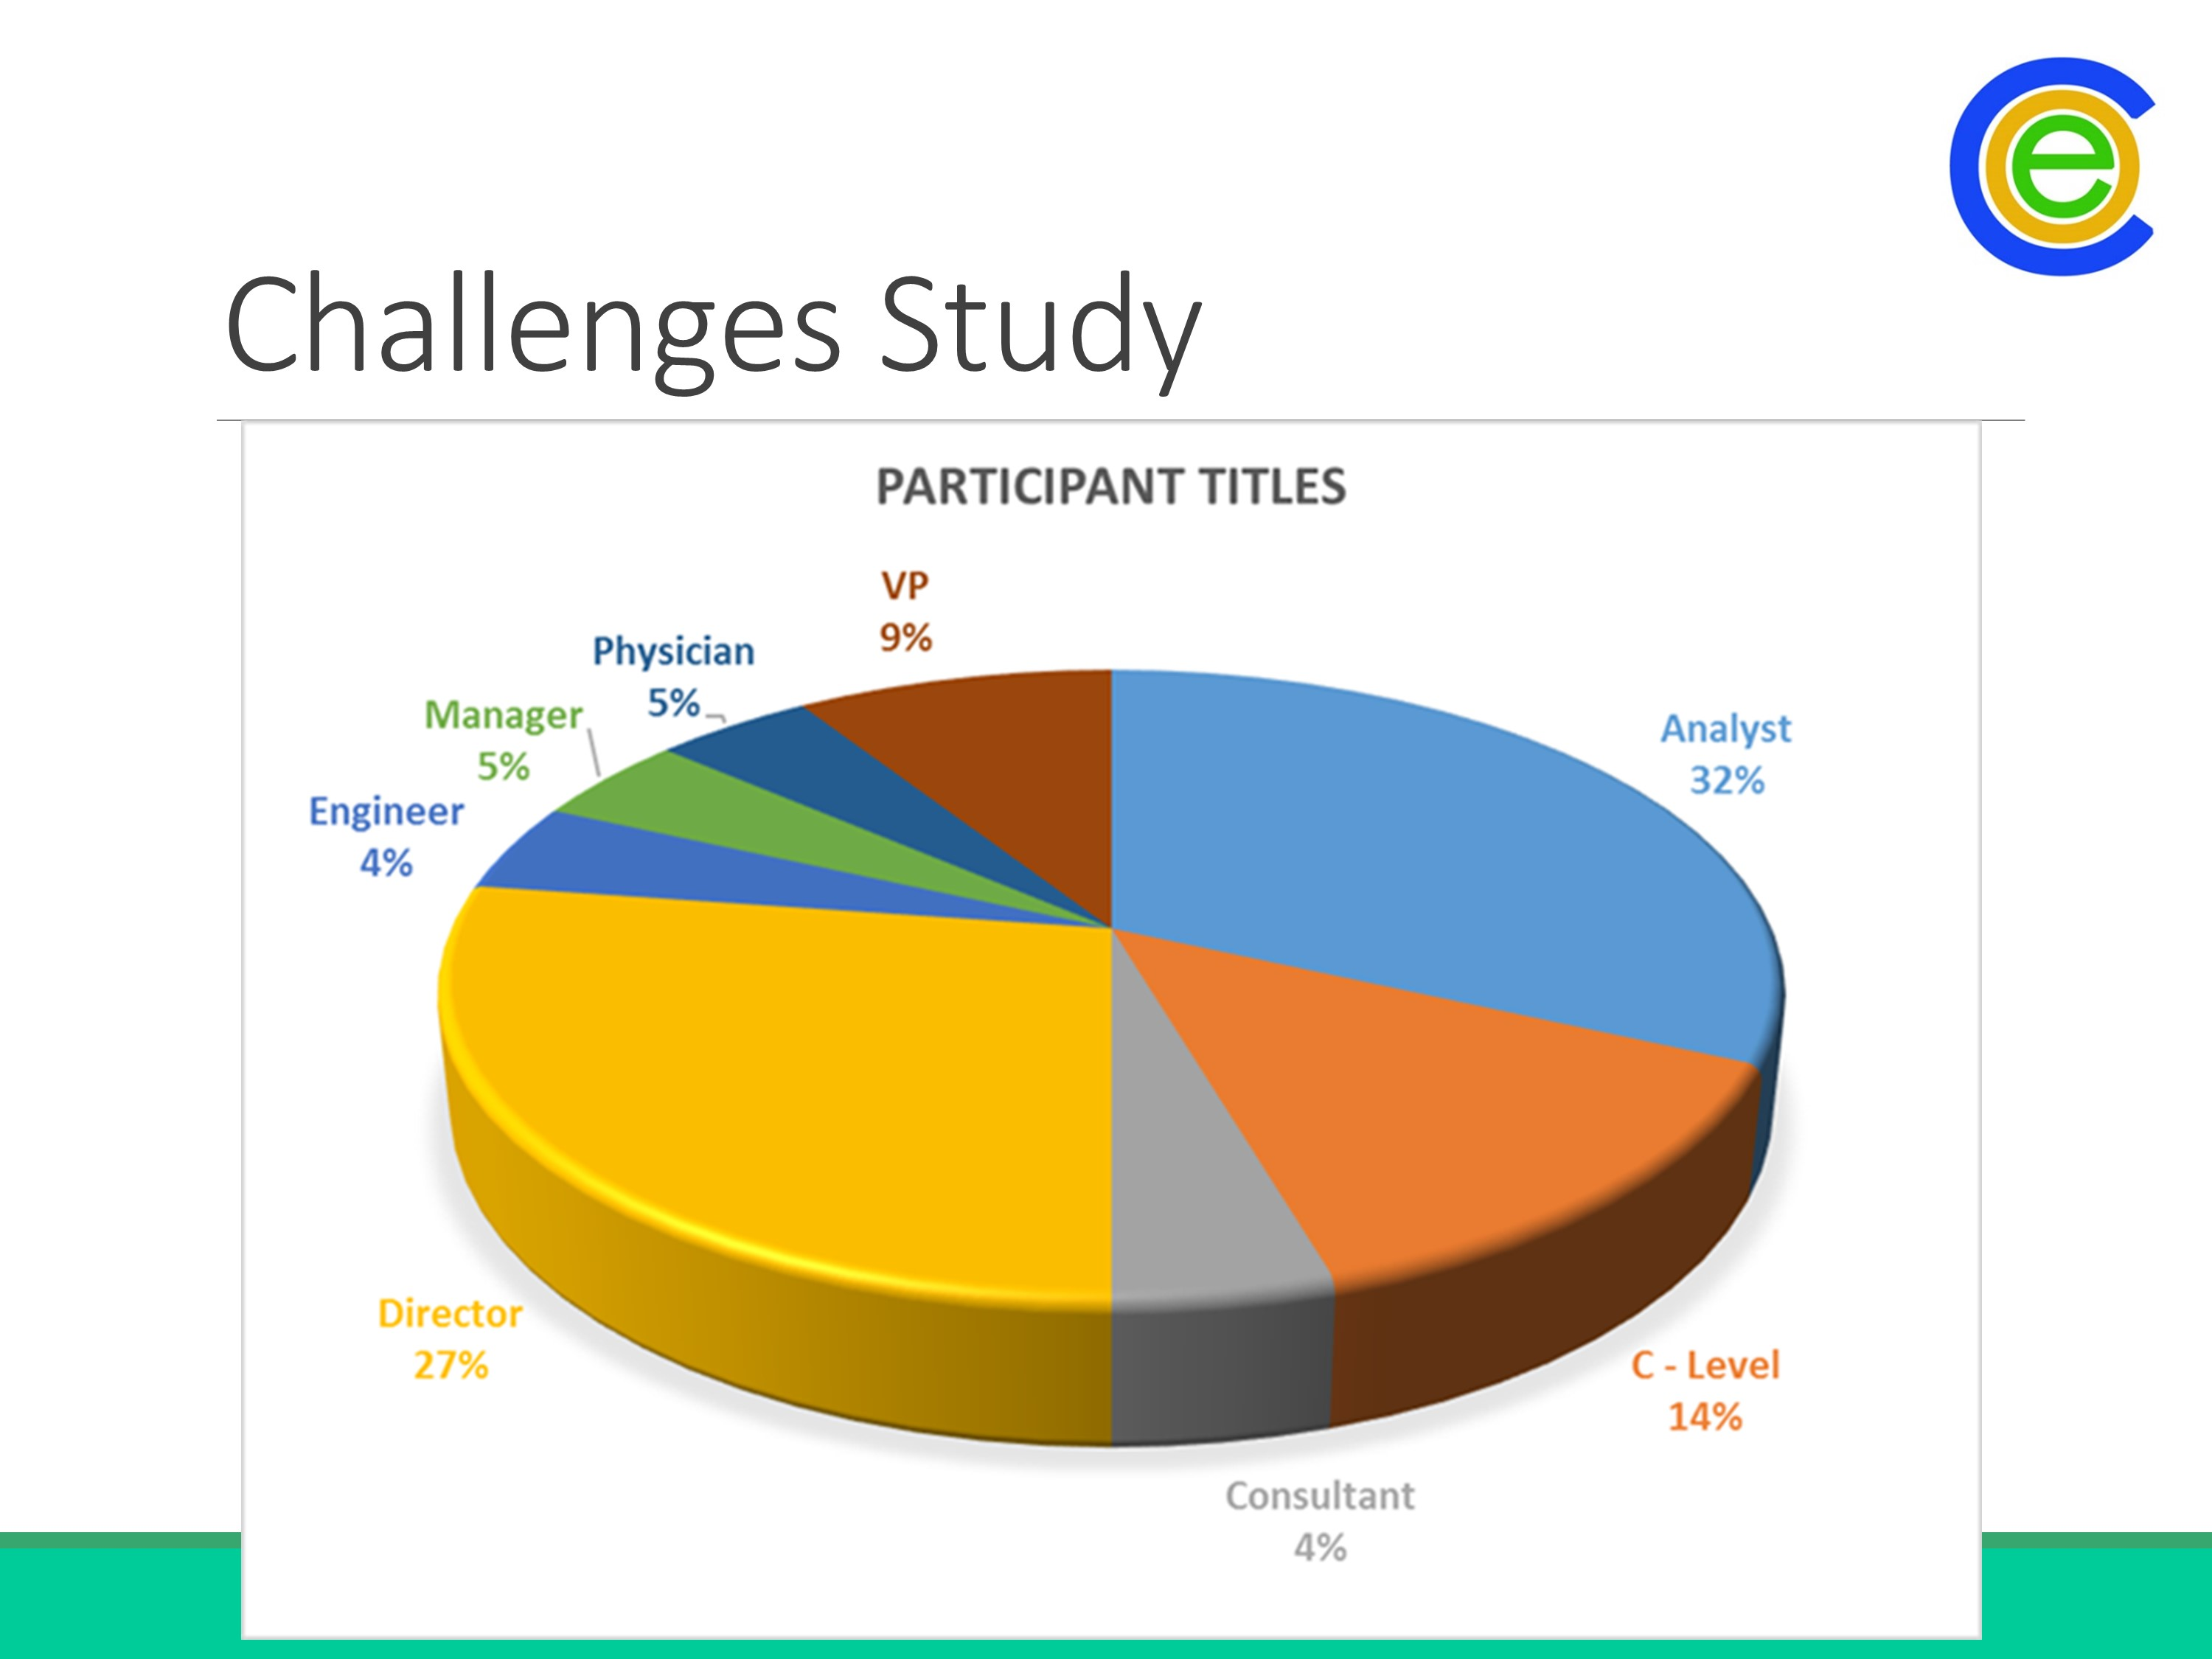 Challenges to Implementing Healthcare Analytics - 2015 Study